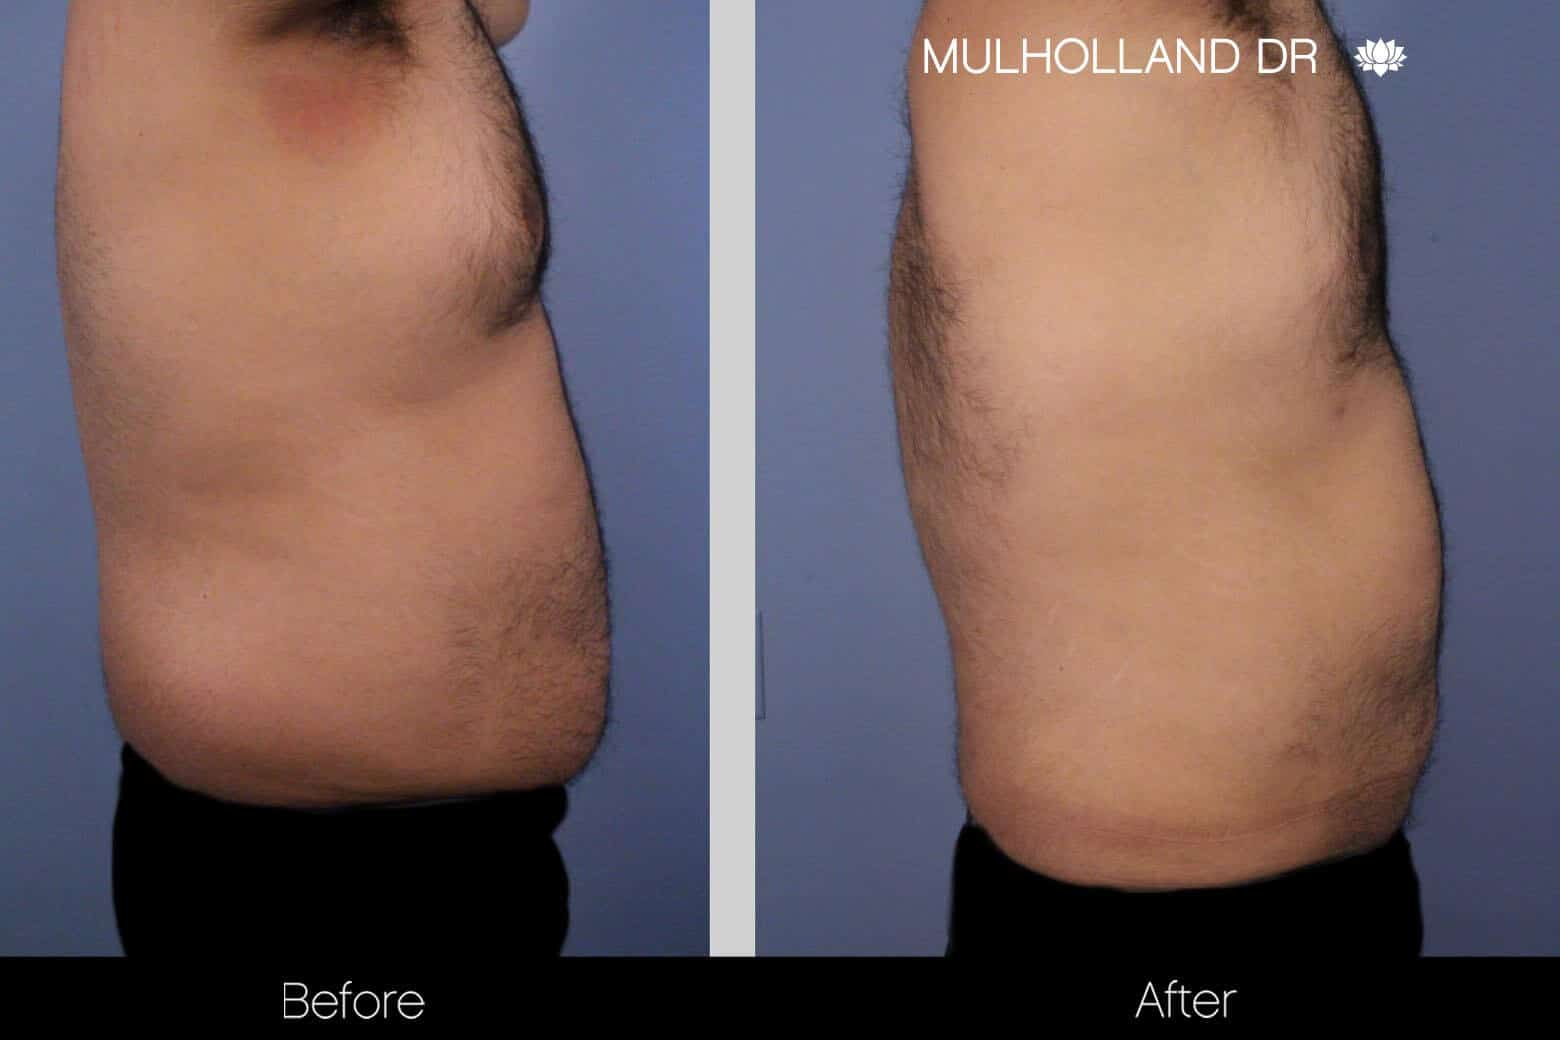 Abdomen Liposuction - Before and After Gallery - Patient Photo 10